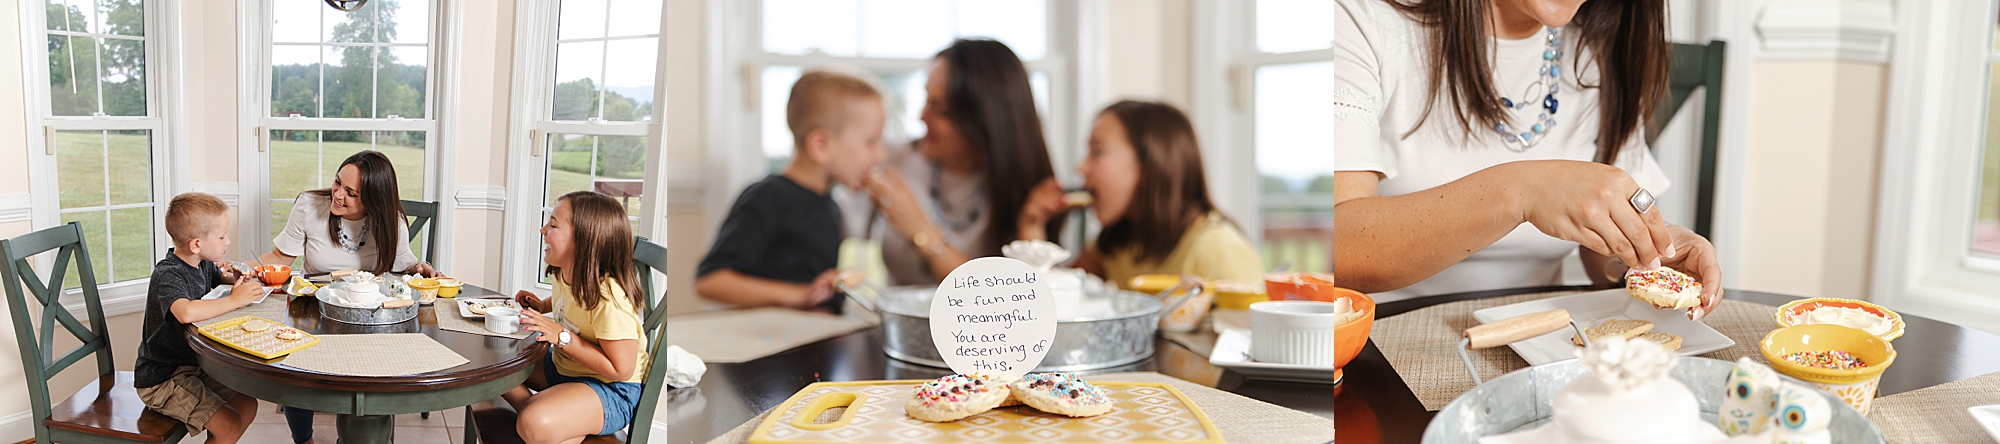 personal_branding_photographer_kristina_rose_photography family making cookies